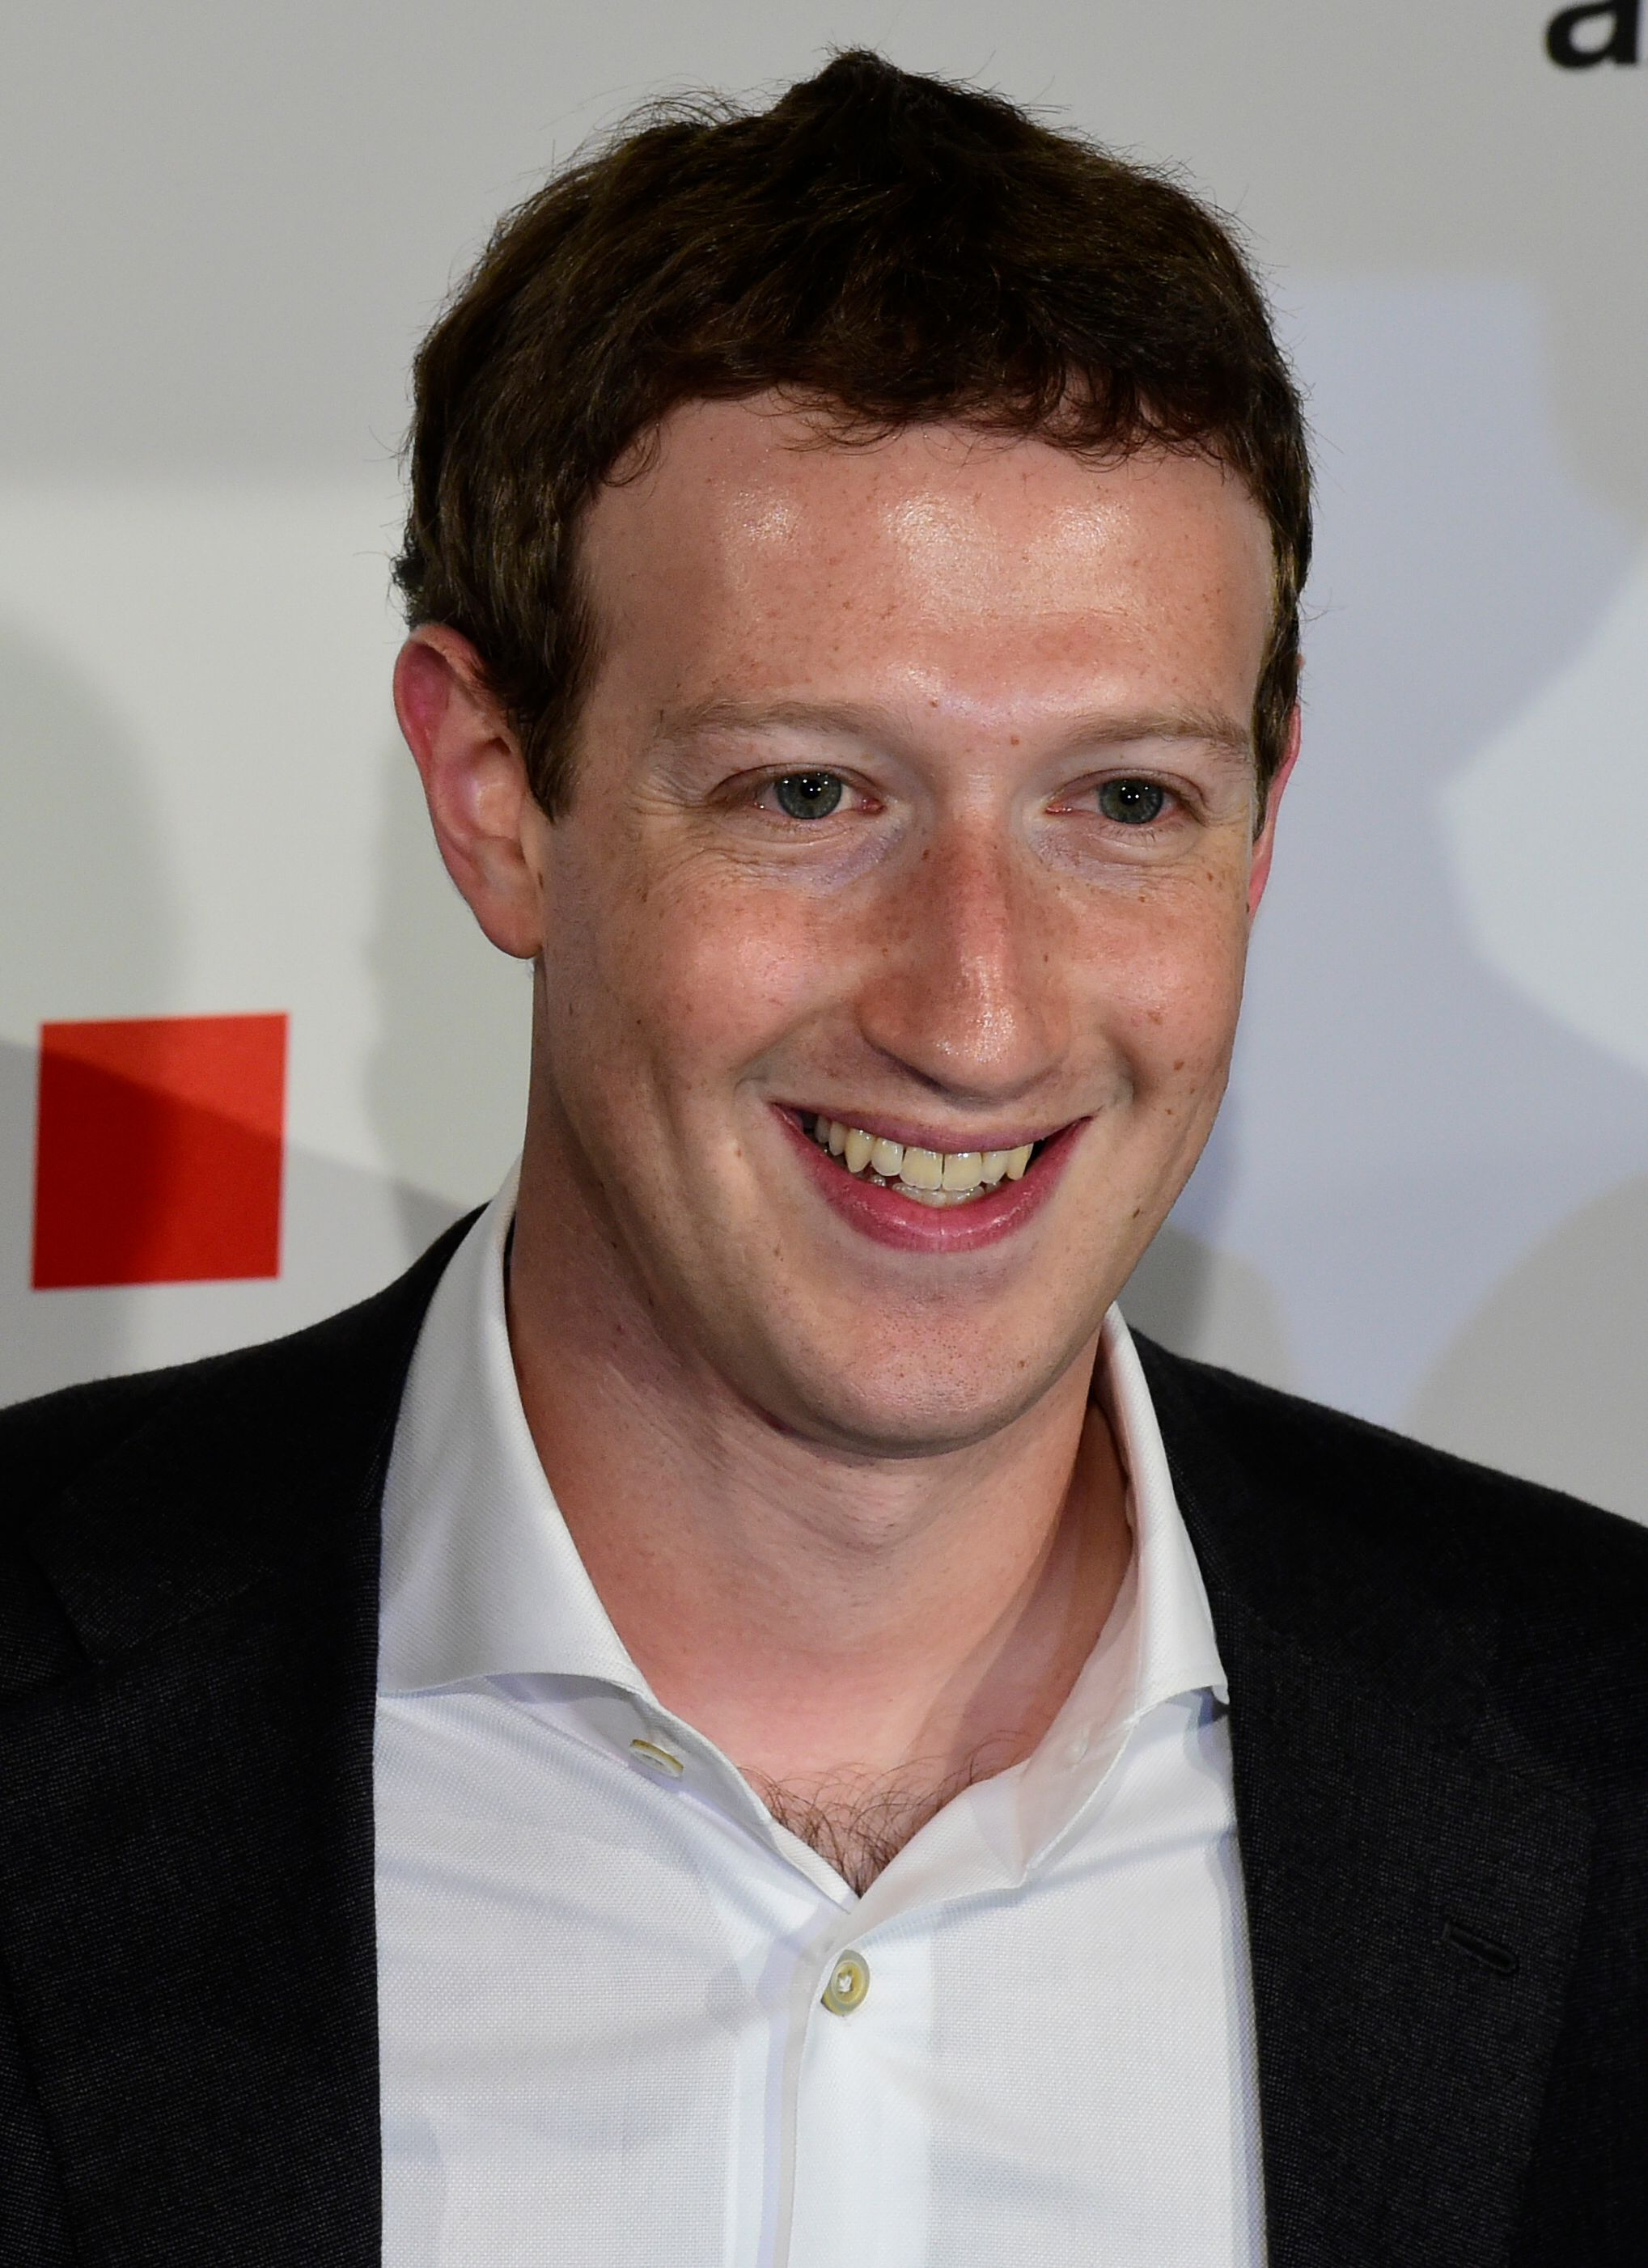 Mark Zuckerberg Age, Mark Zuckerberg Education, Mark Zuckerberg School, Mark Zuckerberg Age Wife